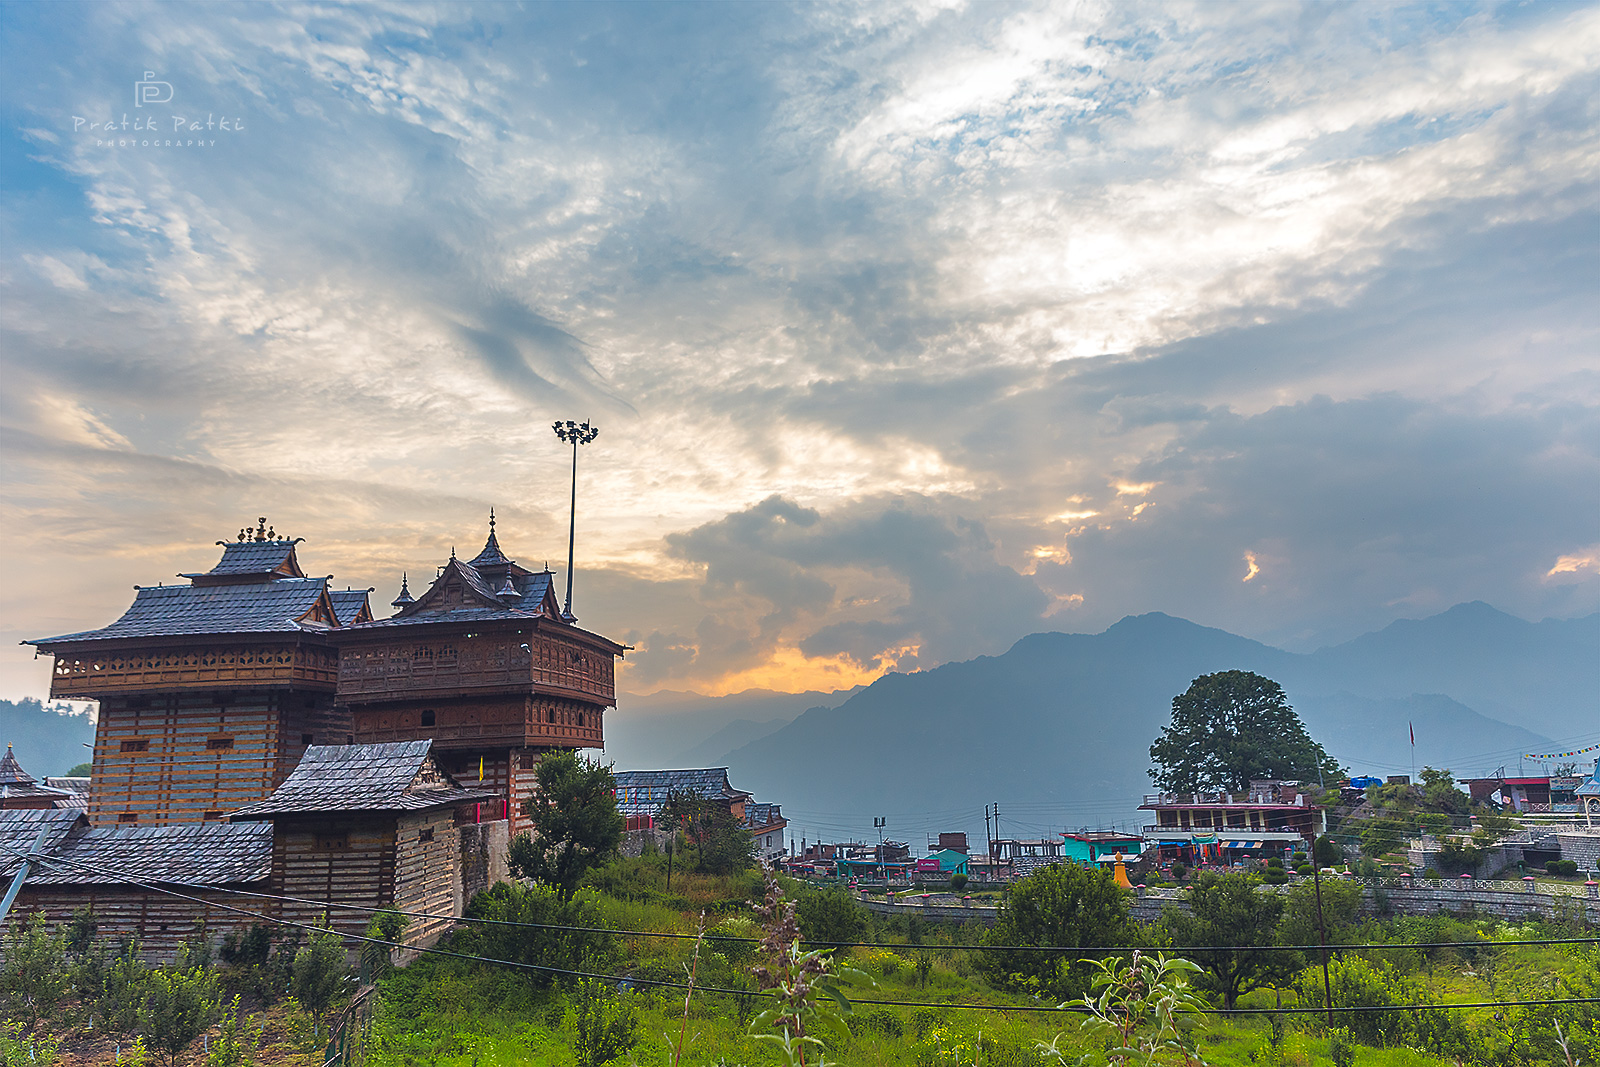 A beautiful evening comes to an end. The temple stands tall amidst the smaller houses and the sunset sky